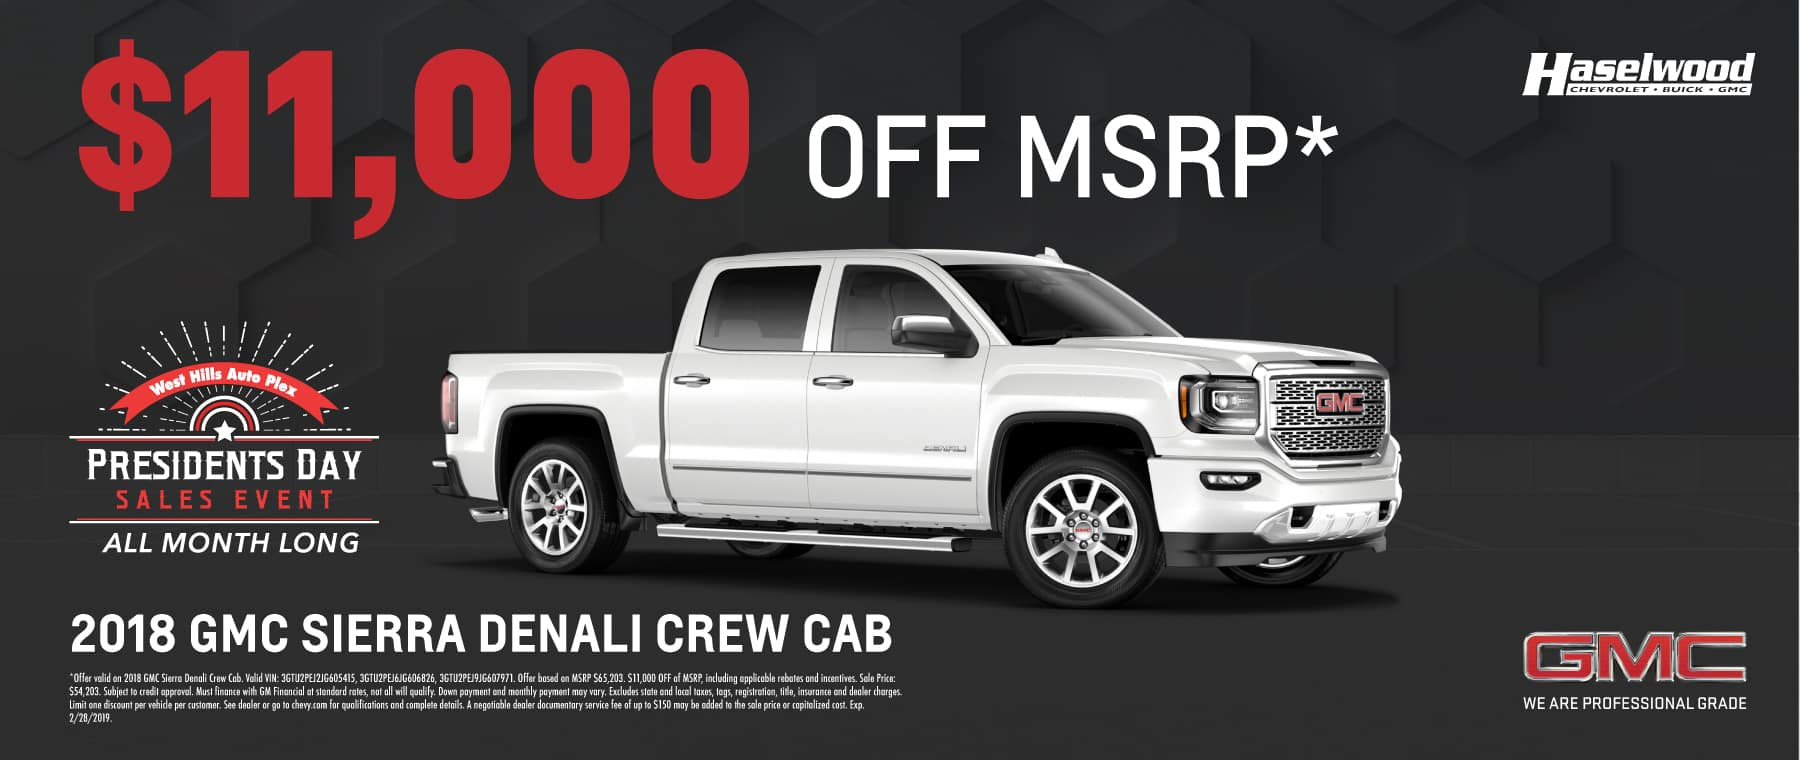 2018 GMC Sierra Denali Crew Cab (Featured Vehicle)  $11,000 OFF of MSRP*   *Offer valid on 2018 GMC Sierra Denali Crew Cab. Valid VIN: 3GTU2PEJ2JG605415, 3GTU2PEJ6JG606826, 3GTU2PEJ9JG607971. Offer based on MSRP $65,203. $11,000 OFF of MSRP, including applicable rebates and incentives. Sale Price: $54,203. Subject to credit approval. Must finance with GM Financial at standard rates, not all will qualify. Down payment and monthly payment may vary. Excludes state and local taxes, tags, registration, title, insurance and dealer charges. Limit one discount per vehicle per customer. See dealer or go to chevy.com for qualifications and complete details. A negotiable dealer documentary service fee of up to $150 may be added to the sale price or capitalized cost. Exp. 2/28/2019.